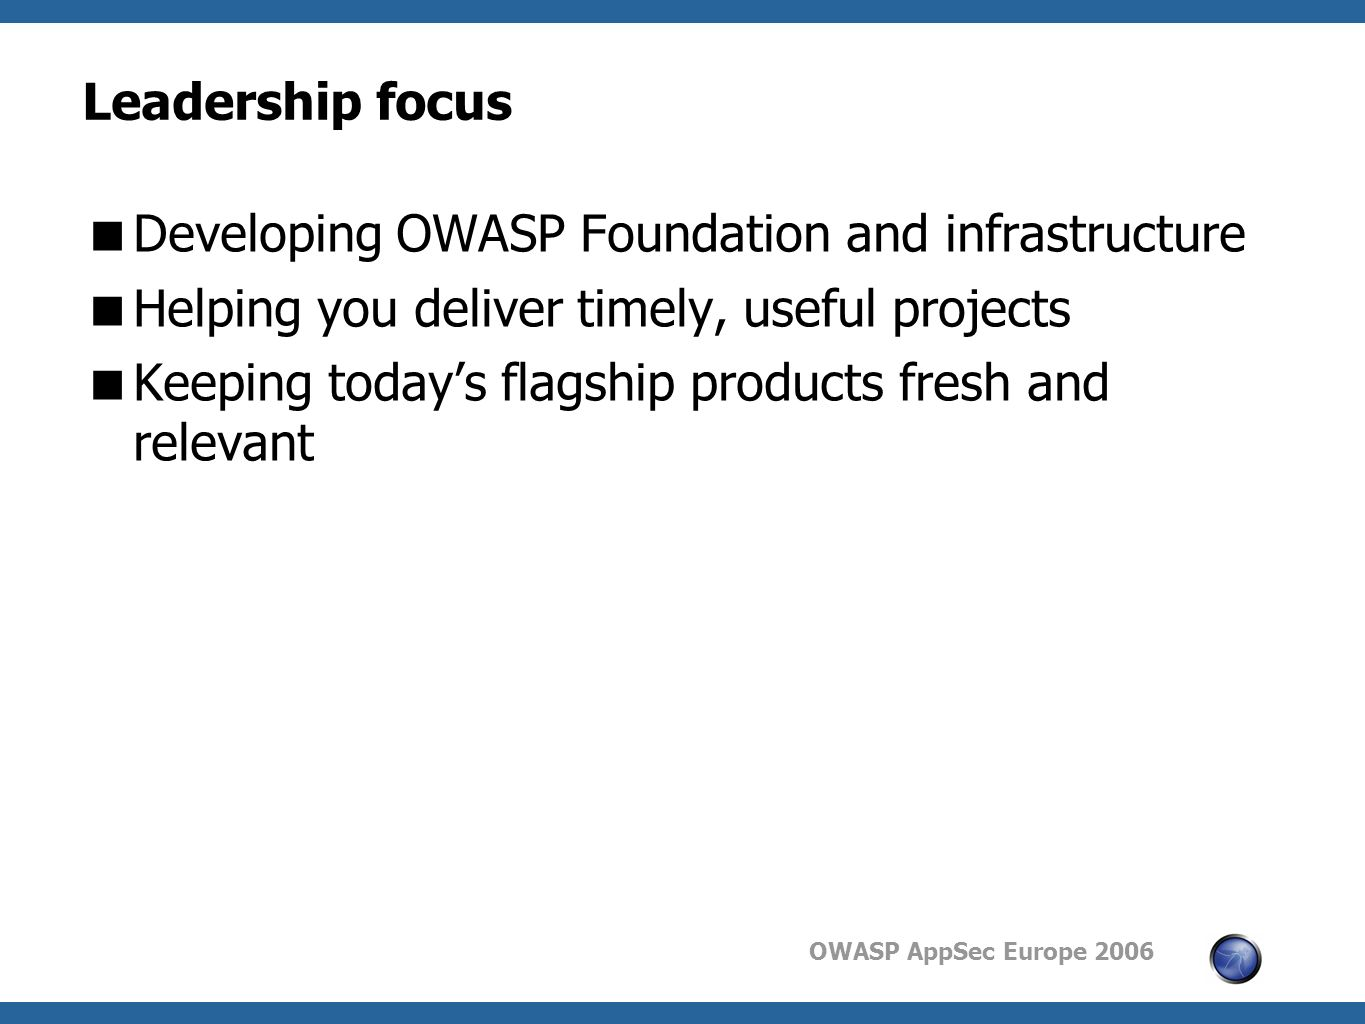 OWASP AppSec Europe 2006 Leadership focus  Developing OWASP Foundation and infrastructure  Helping you deliver timely, useful projects  Keeping today's flagship products fresh and relevant